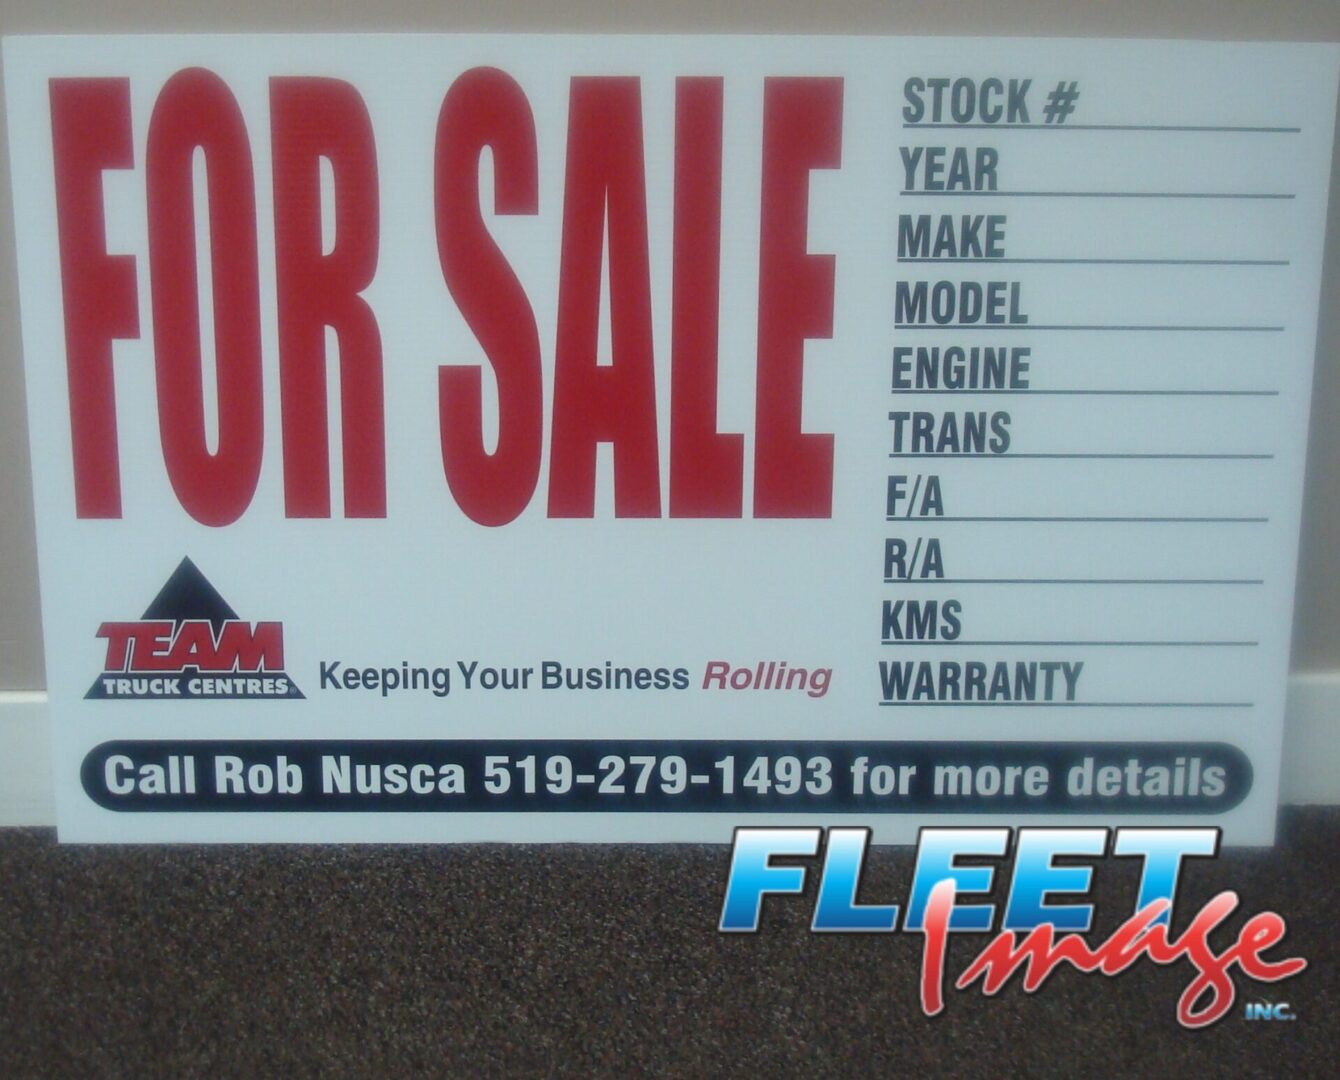 TEAM TRUCK CENTRES FOR SALE signage